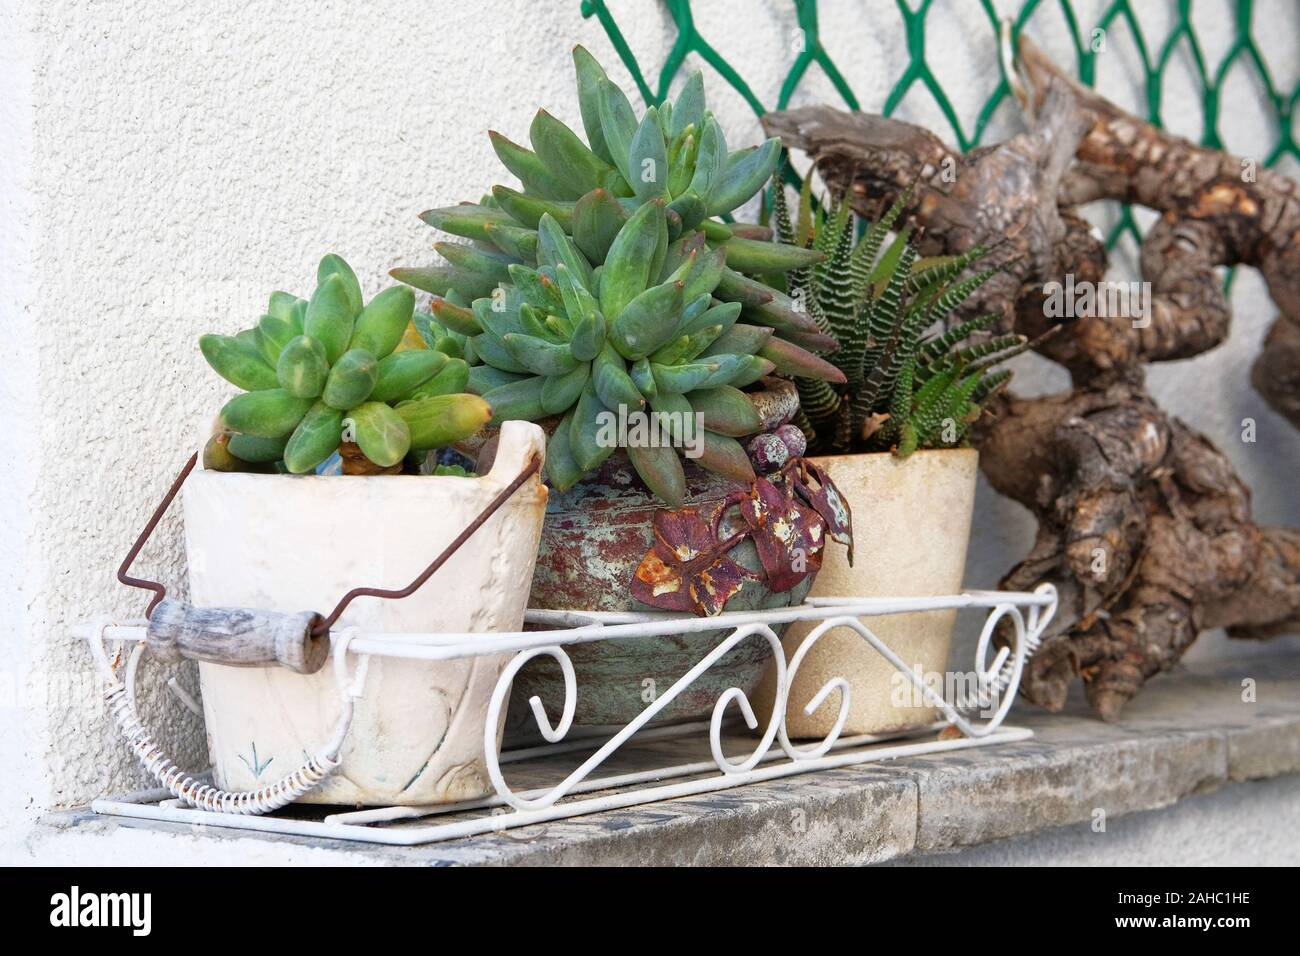 Pots With Succulents Plants In Courtyard Pachyphytum Plants From Mexico Greenhouse Succulent Plant For Landscape Design Stock Photo Alamy